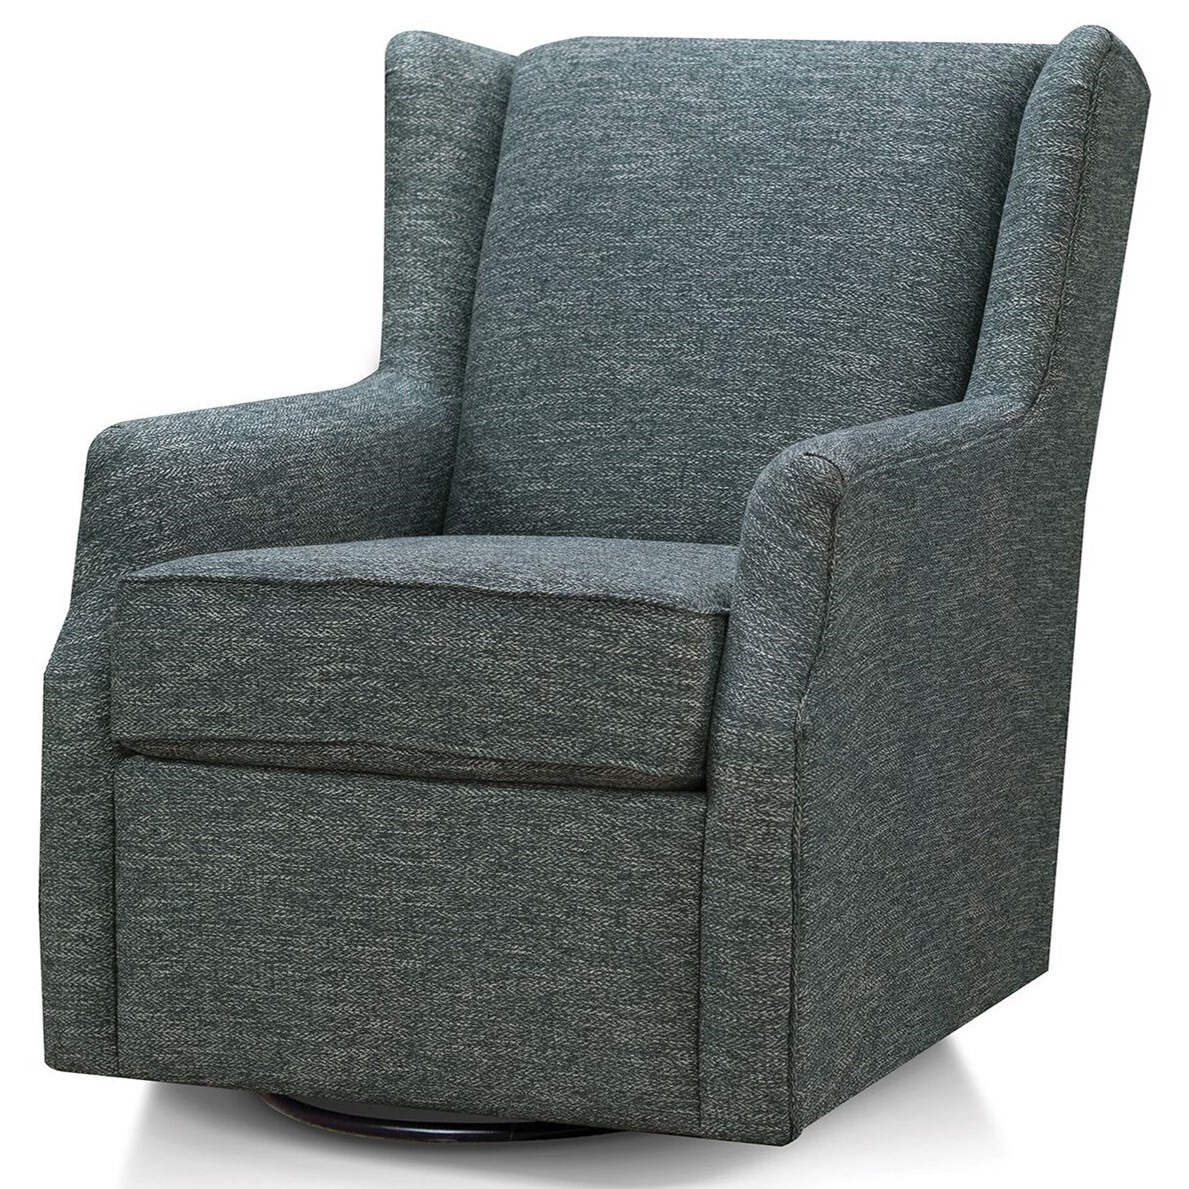 Allie Swivel Glider Chair by England at Suburban Furniture